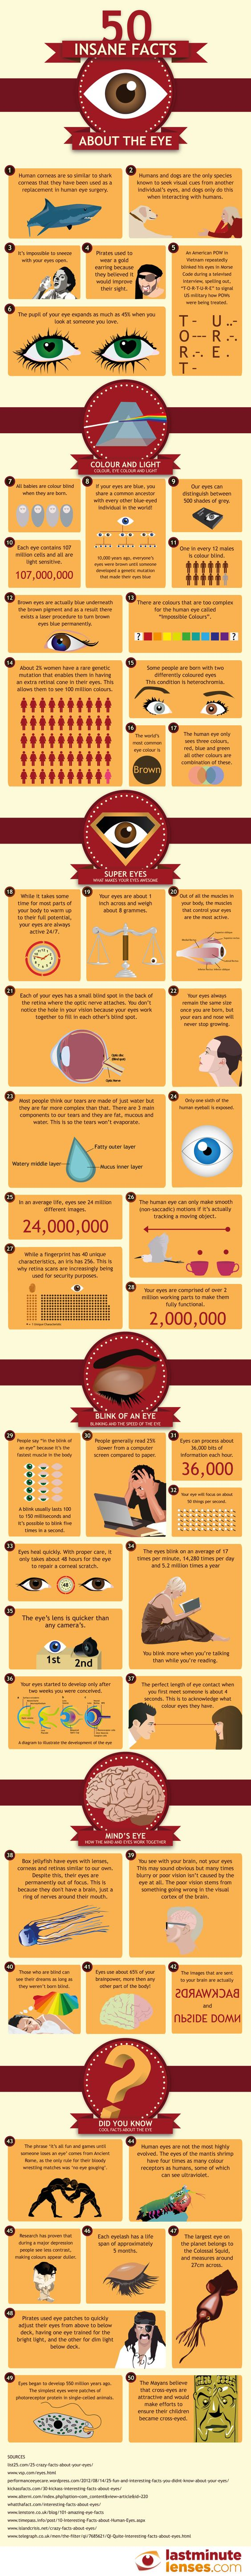 Insane Facts About The Eye #Infographic #Eye #Facts - repinned by @PediaStaff – Please Visit ht.ly/63sNt for all our ped therapy, school psych, school nursing & special ed pins